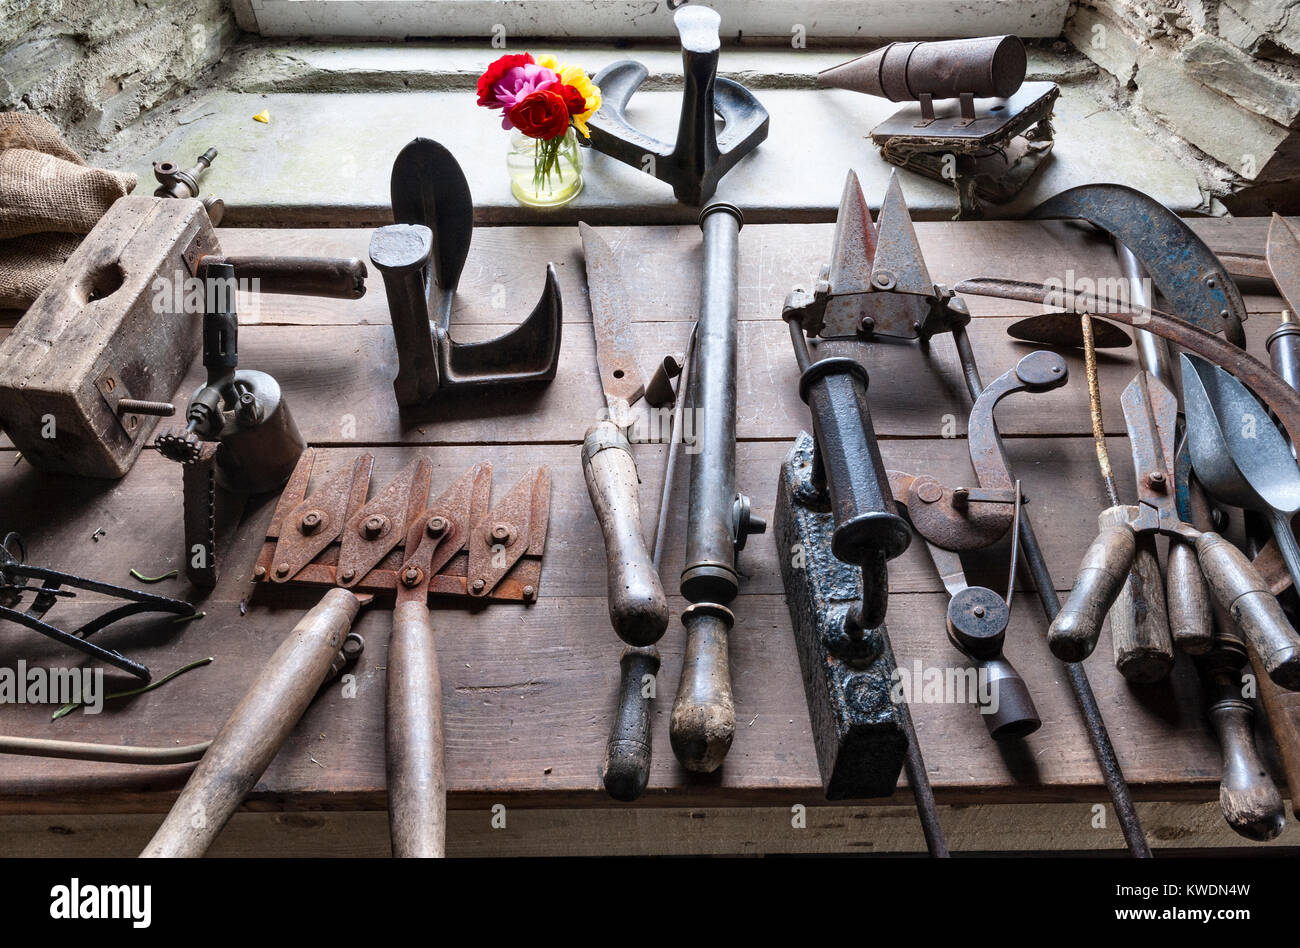 Charmant The Lost Gardens Of Heligan, Cornwall, UK. Antique Garden Tools In One Of